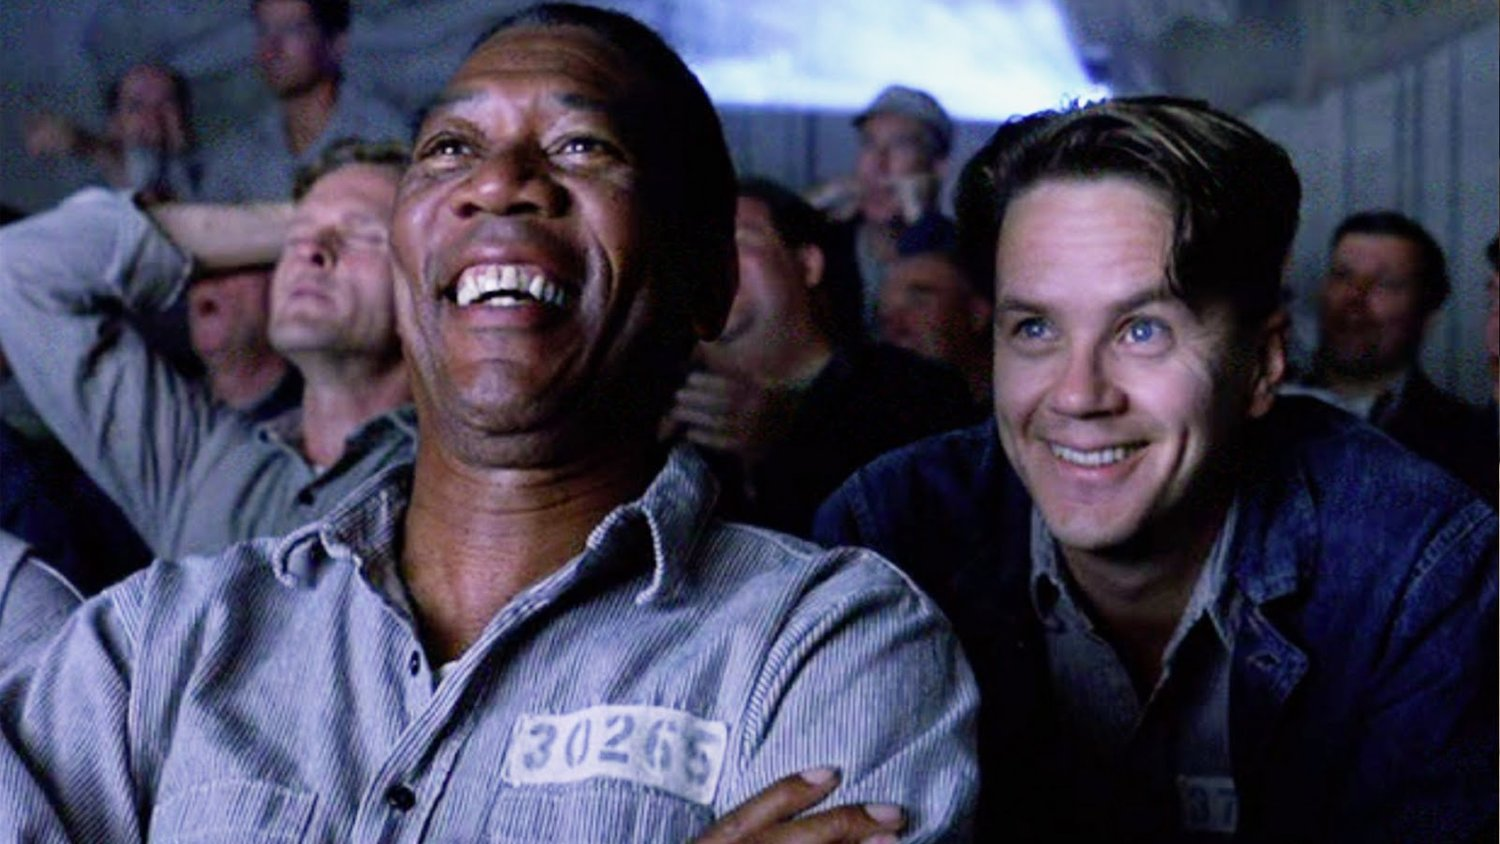 Morgan Freeman Explains Why THE SHAWSHANK REDEMPTION Tanked at The Box Office